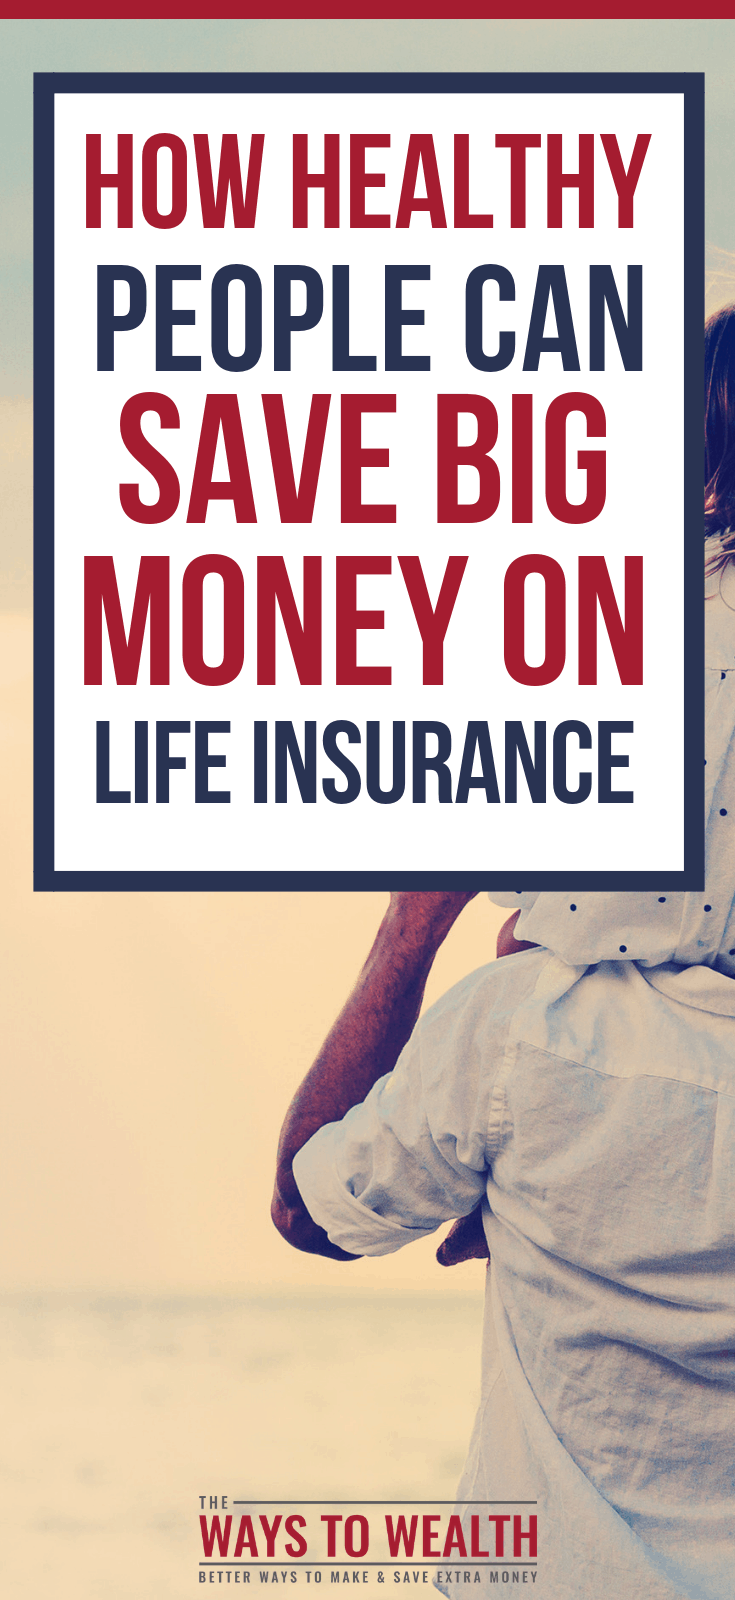 How Healthy People Can Save Big On Life Insurance. A review of my experience getting a quote from Health IQ Life Insurance Company. A new, agency offering lower rates for health conscious people.